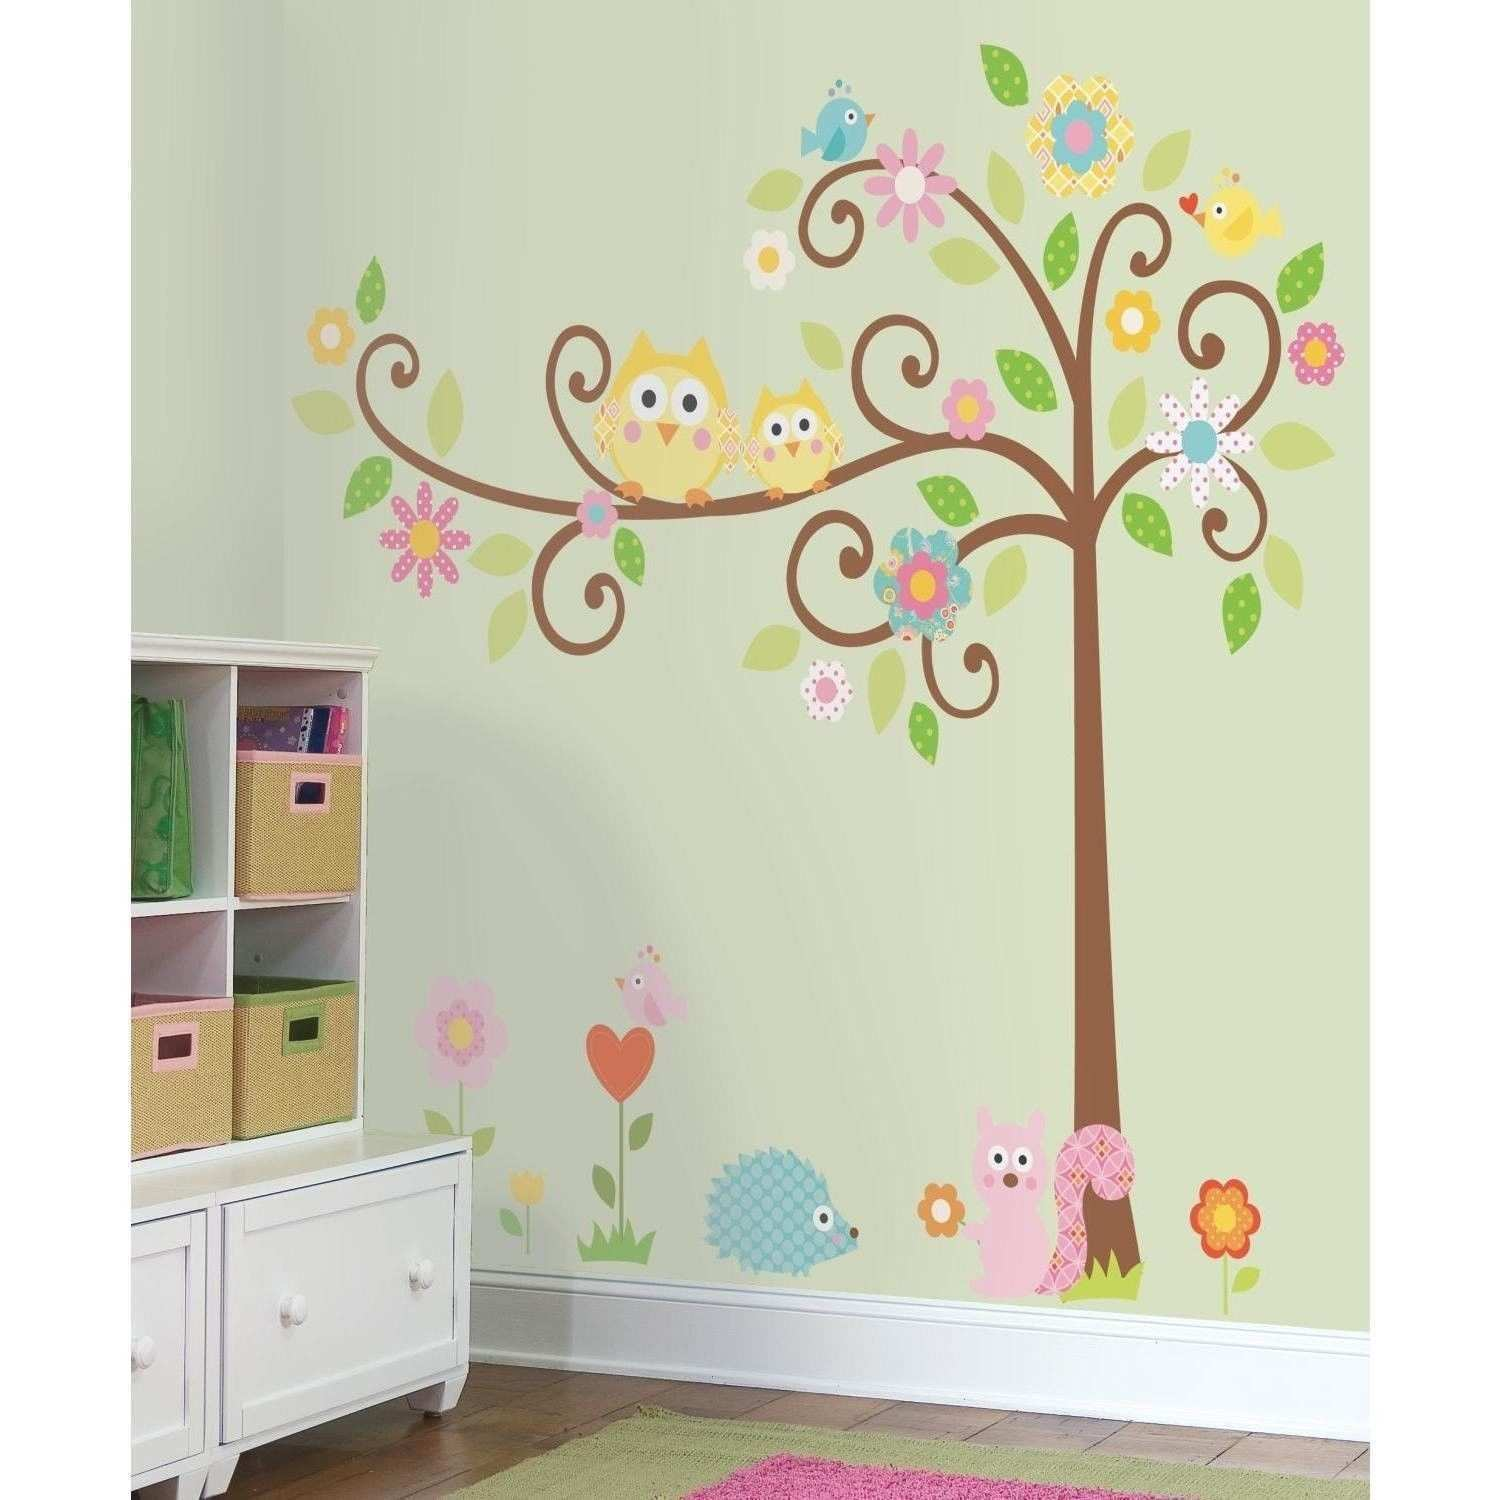 Kids Room Peel And Stick Wall Murals Removable Wall Stickers Vinyl